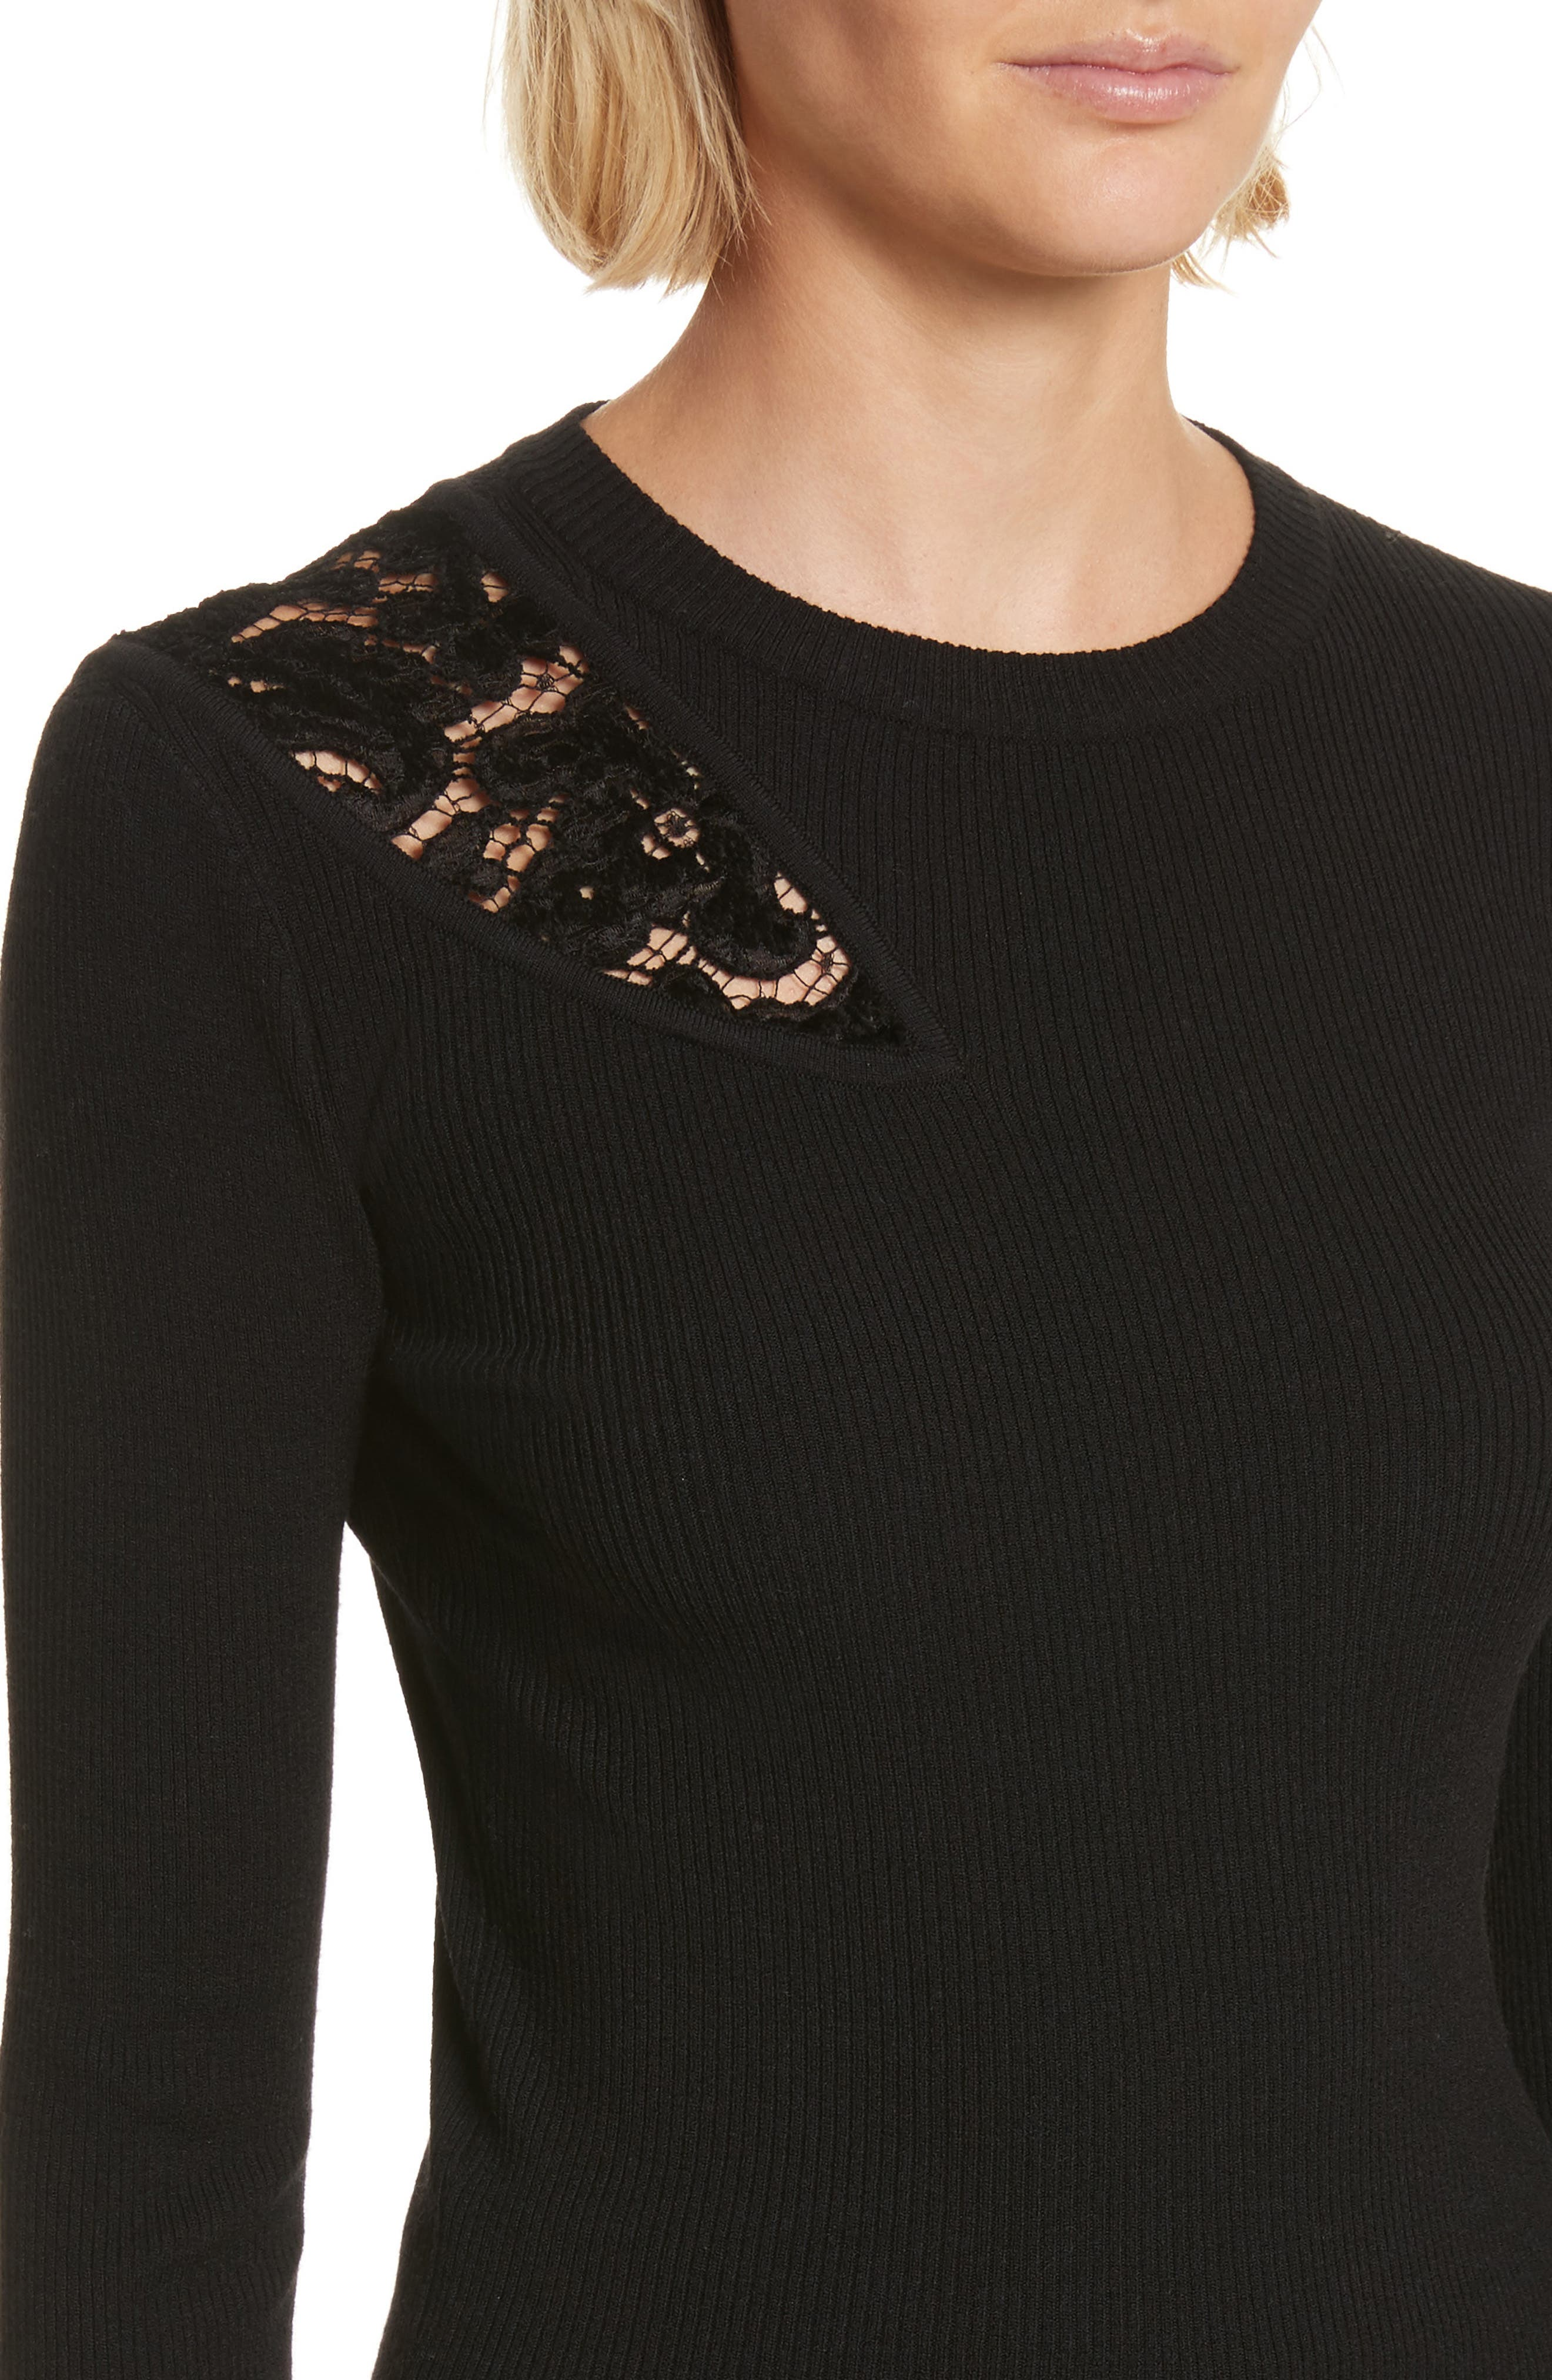 Terence Lace Inset Sweater,                             Alternate thumbnail 4, color,                             Black